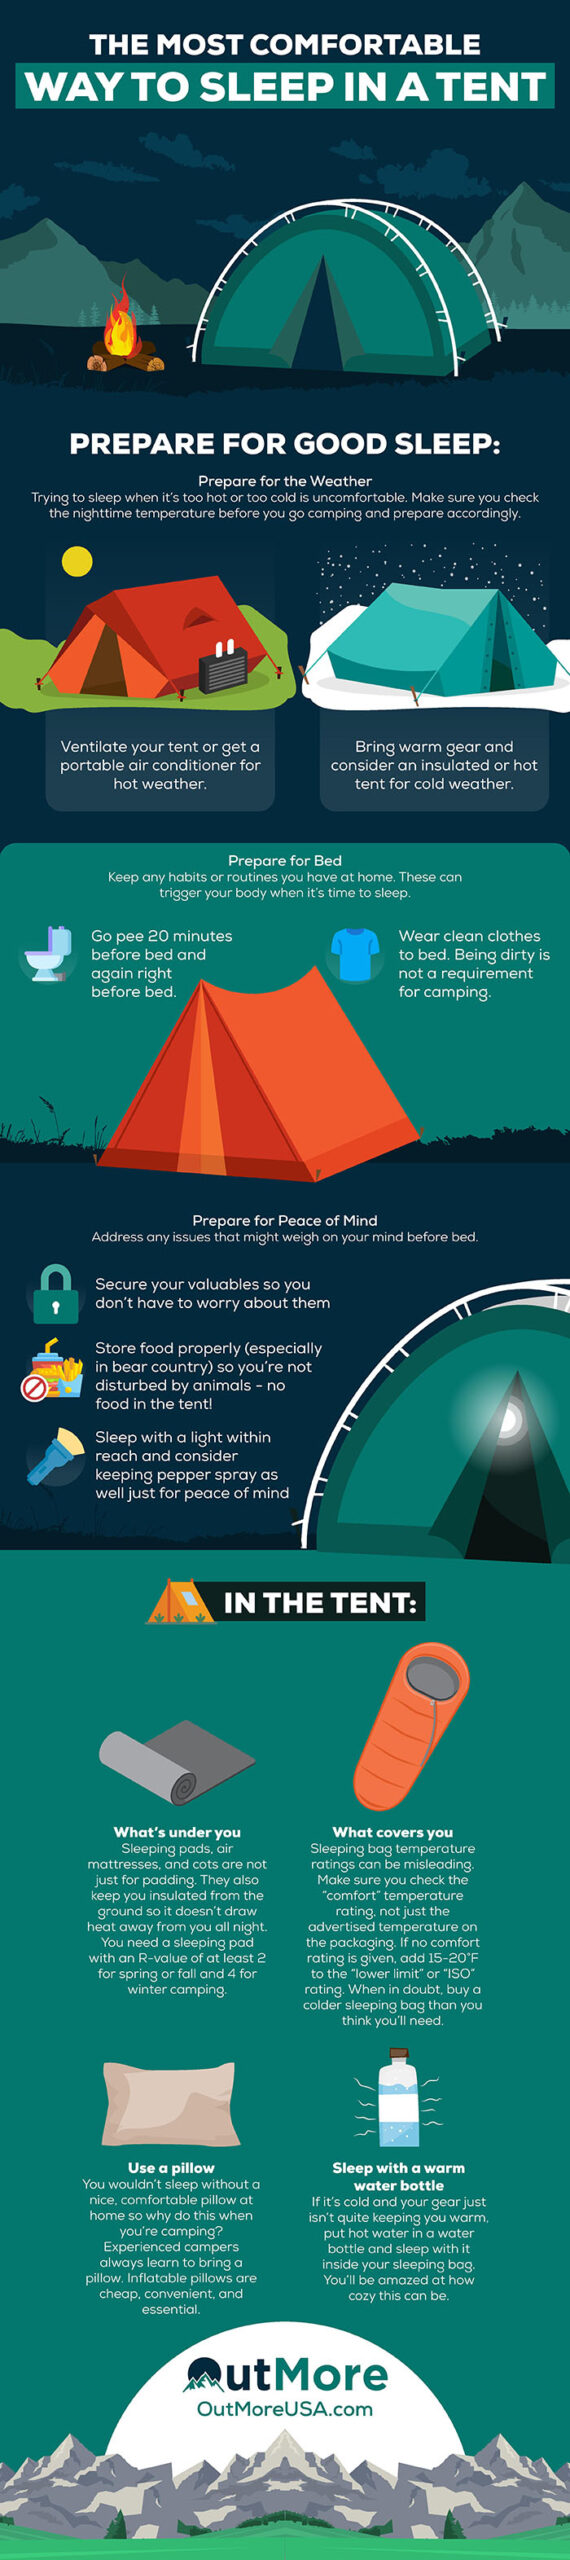 Most Comfortable Way to Sleep in a Tent Infographic